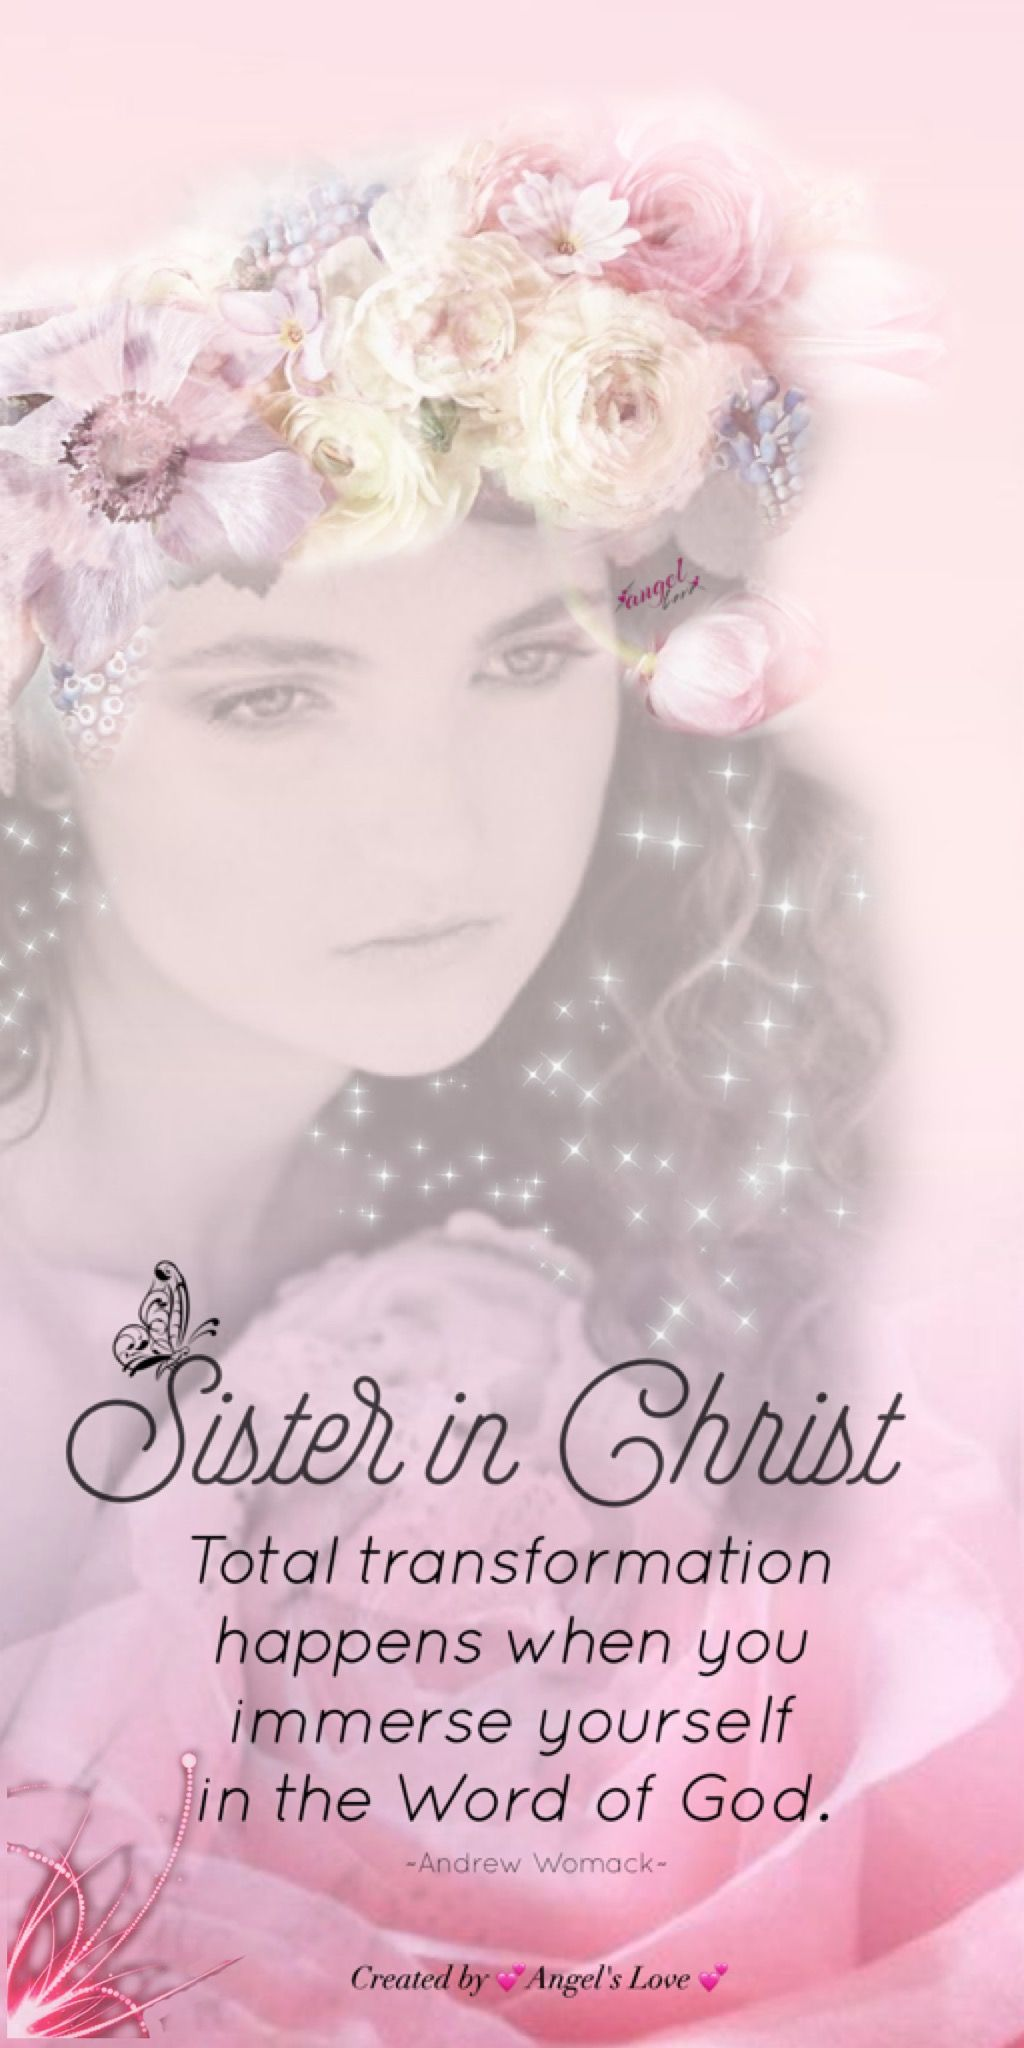 Love You Sister In Christ